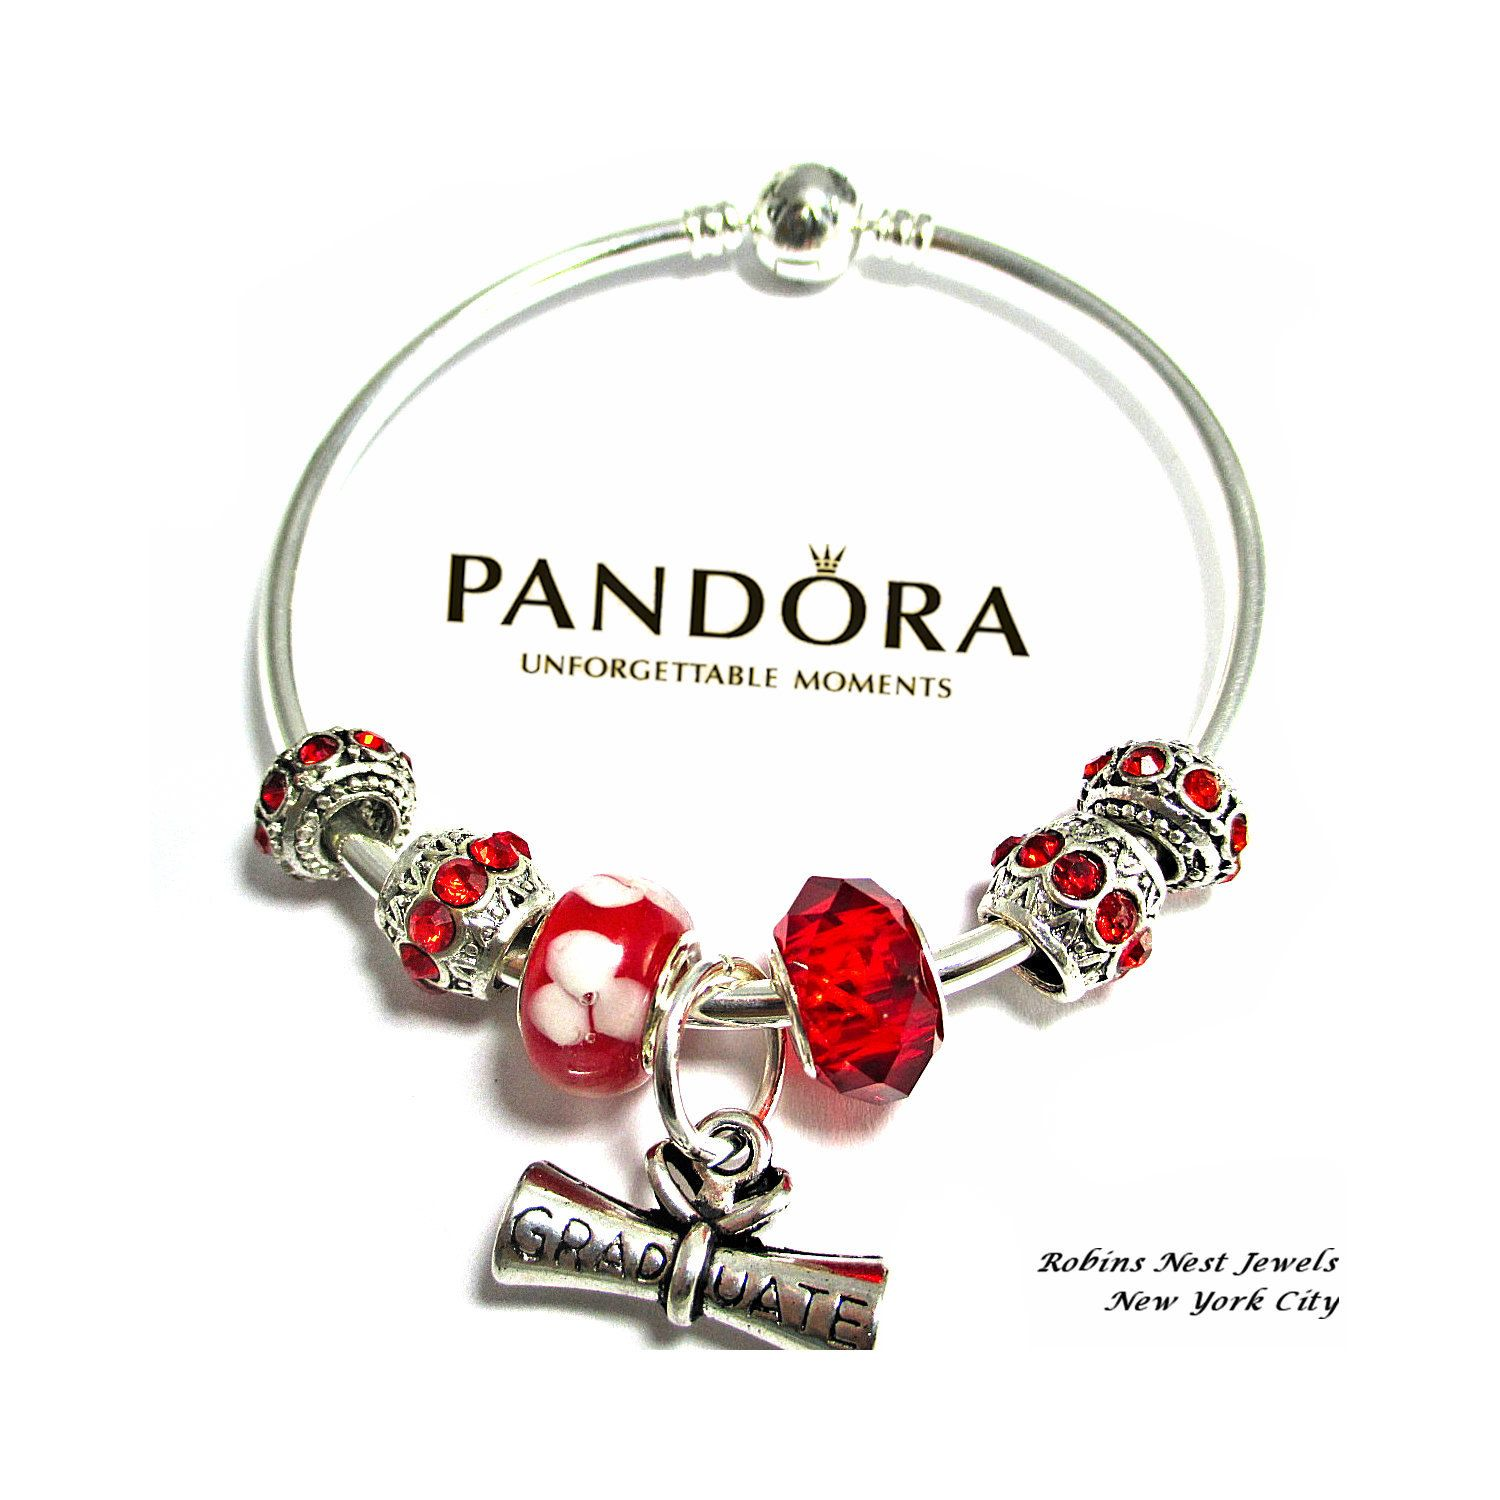 Authentic Pandora Graduation Bracelet Bangle Charm Sterling Silver Non Branded Charms Graduate